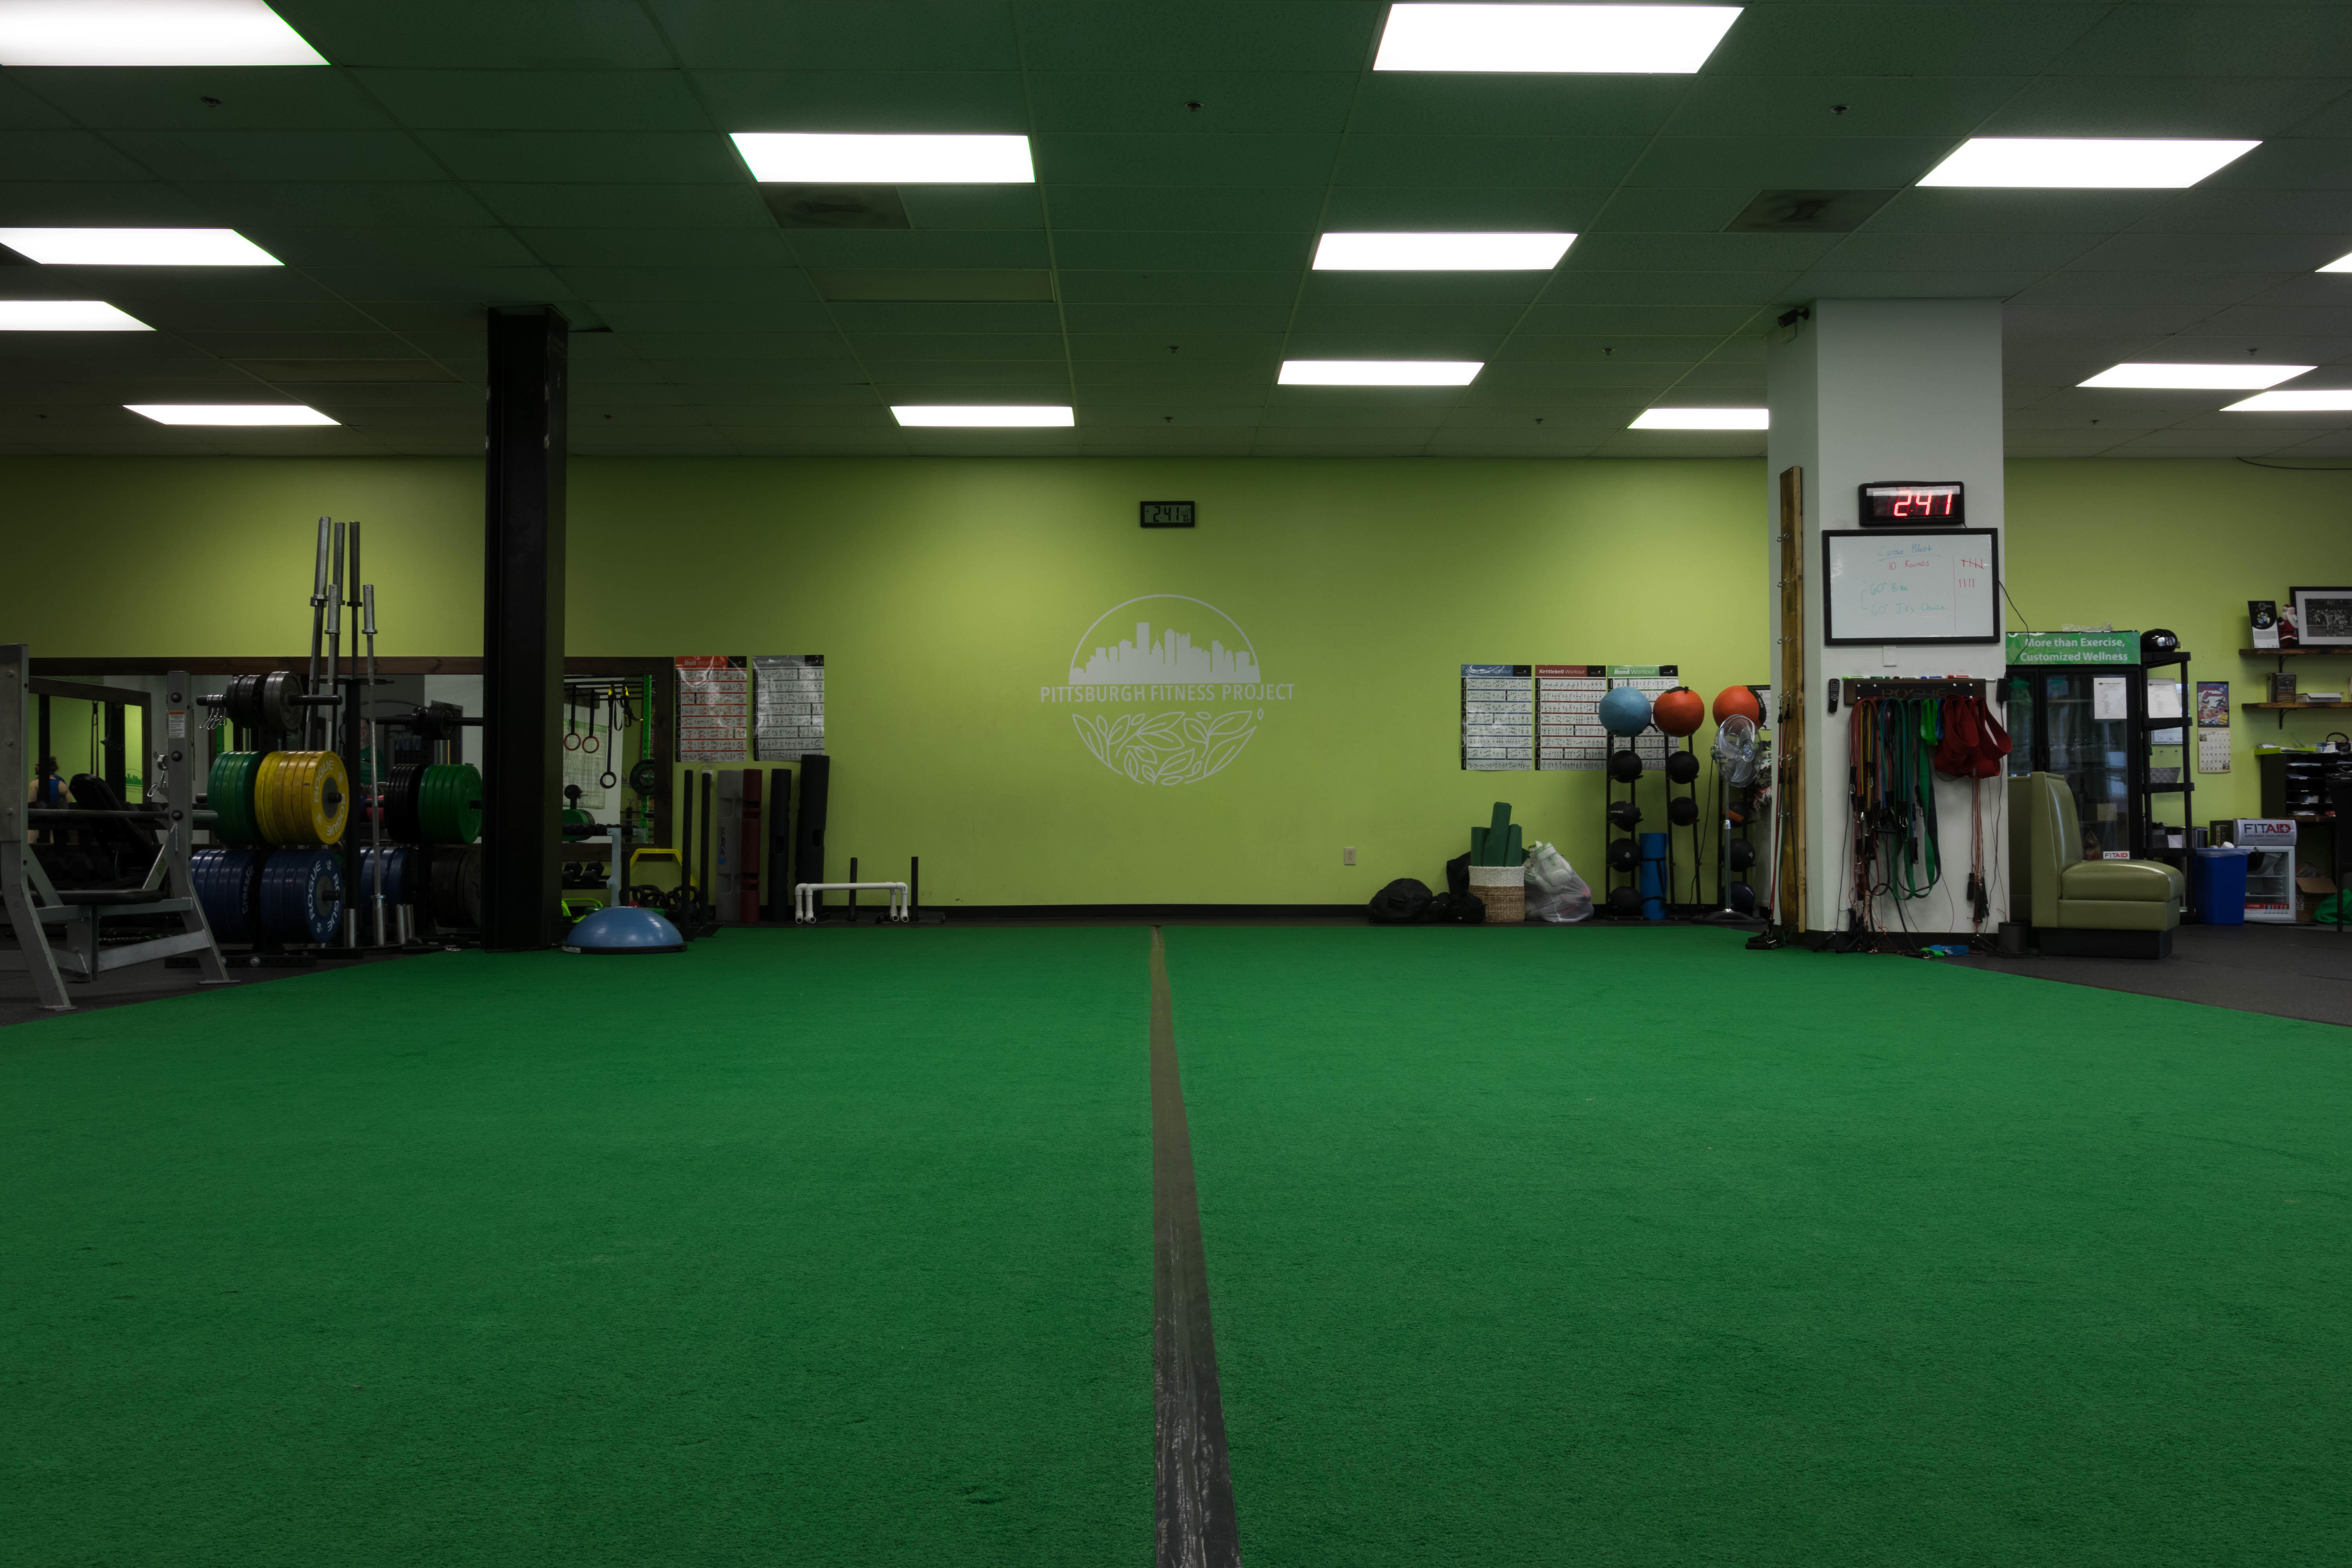 Pittsburgh Fitness Project image 11